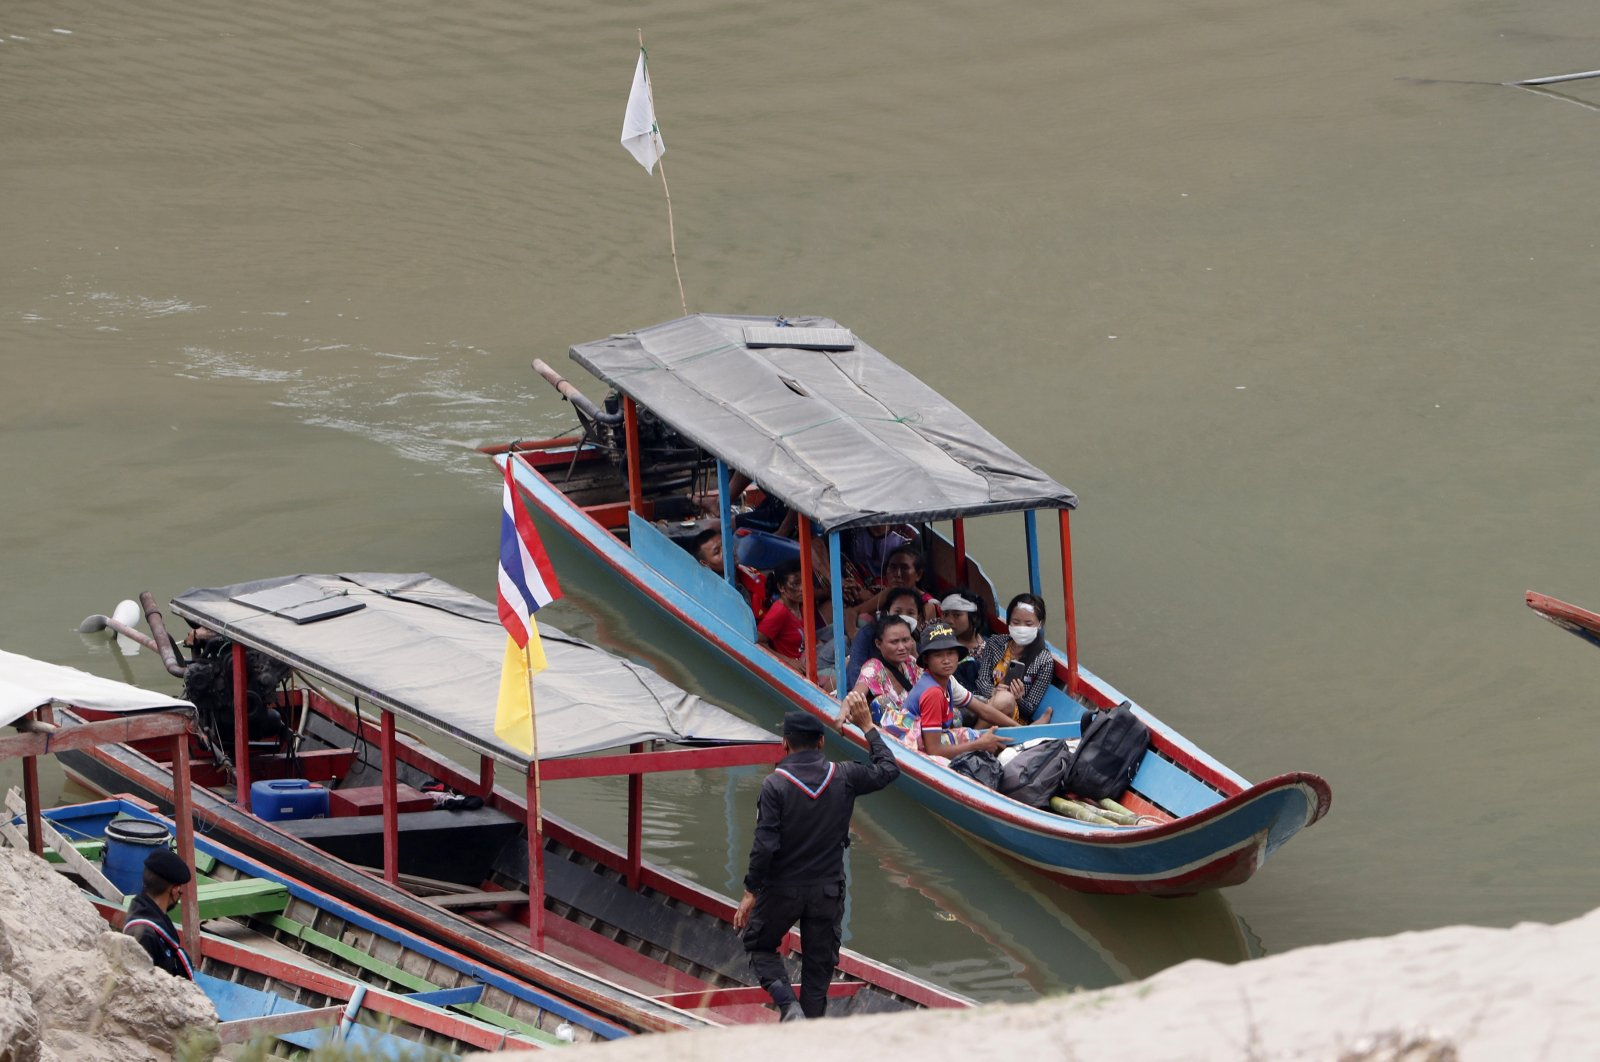 Karenni villagers from Myanmar arrive on a boat with an injured person as they evacuate to Ban Mae Sam Laep Health Center in Mae Hong Son province, northern Thailand, March 30, 2021. (AP Photo)